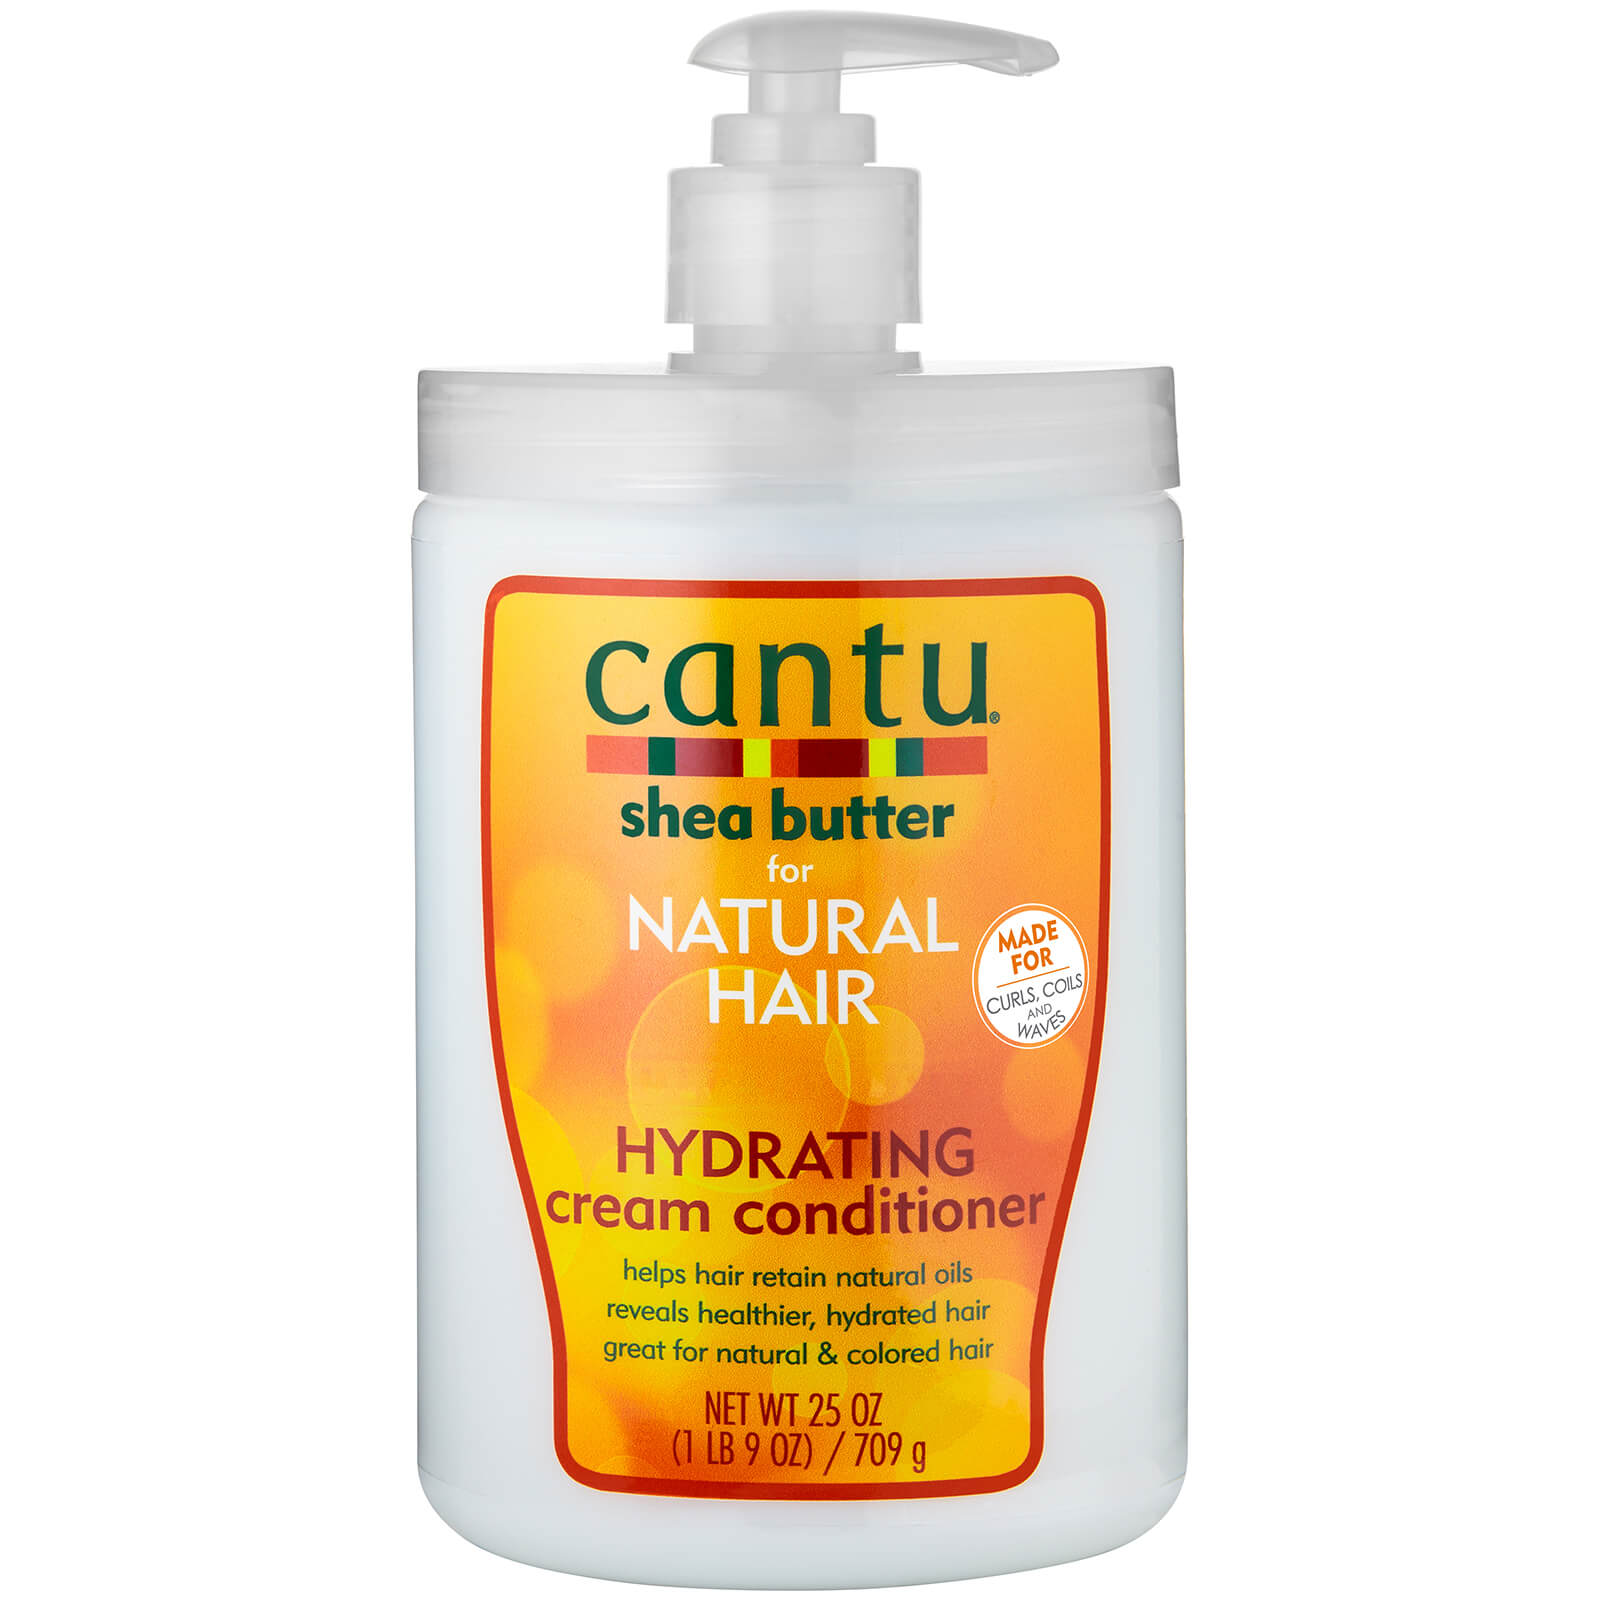 Купить Cantu Shea Butter for Natural Hair Hydrating Cream Conditioner – Salon Size 25 oz